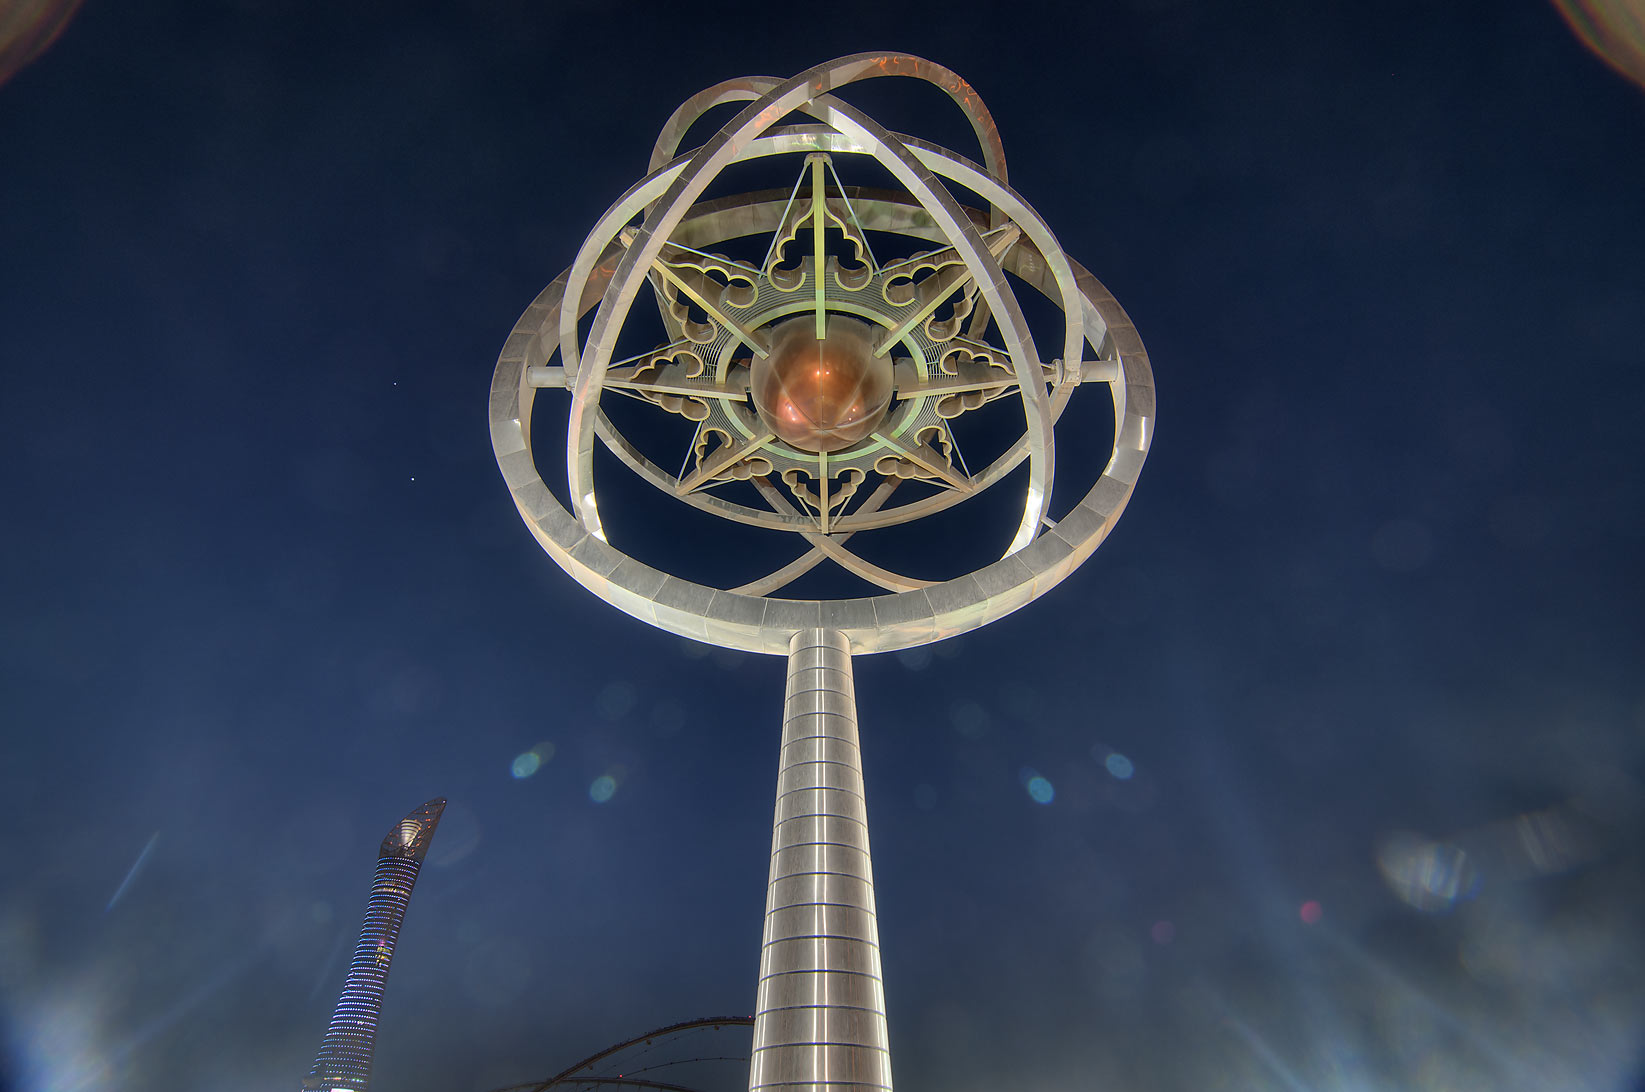 Torch model at the corner of Aspire Zone. Doha, Qatar